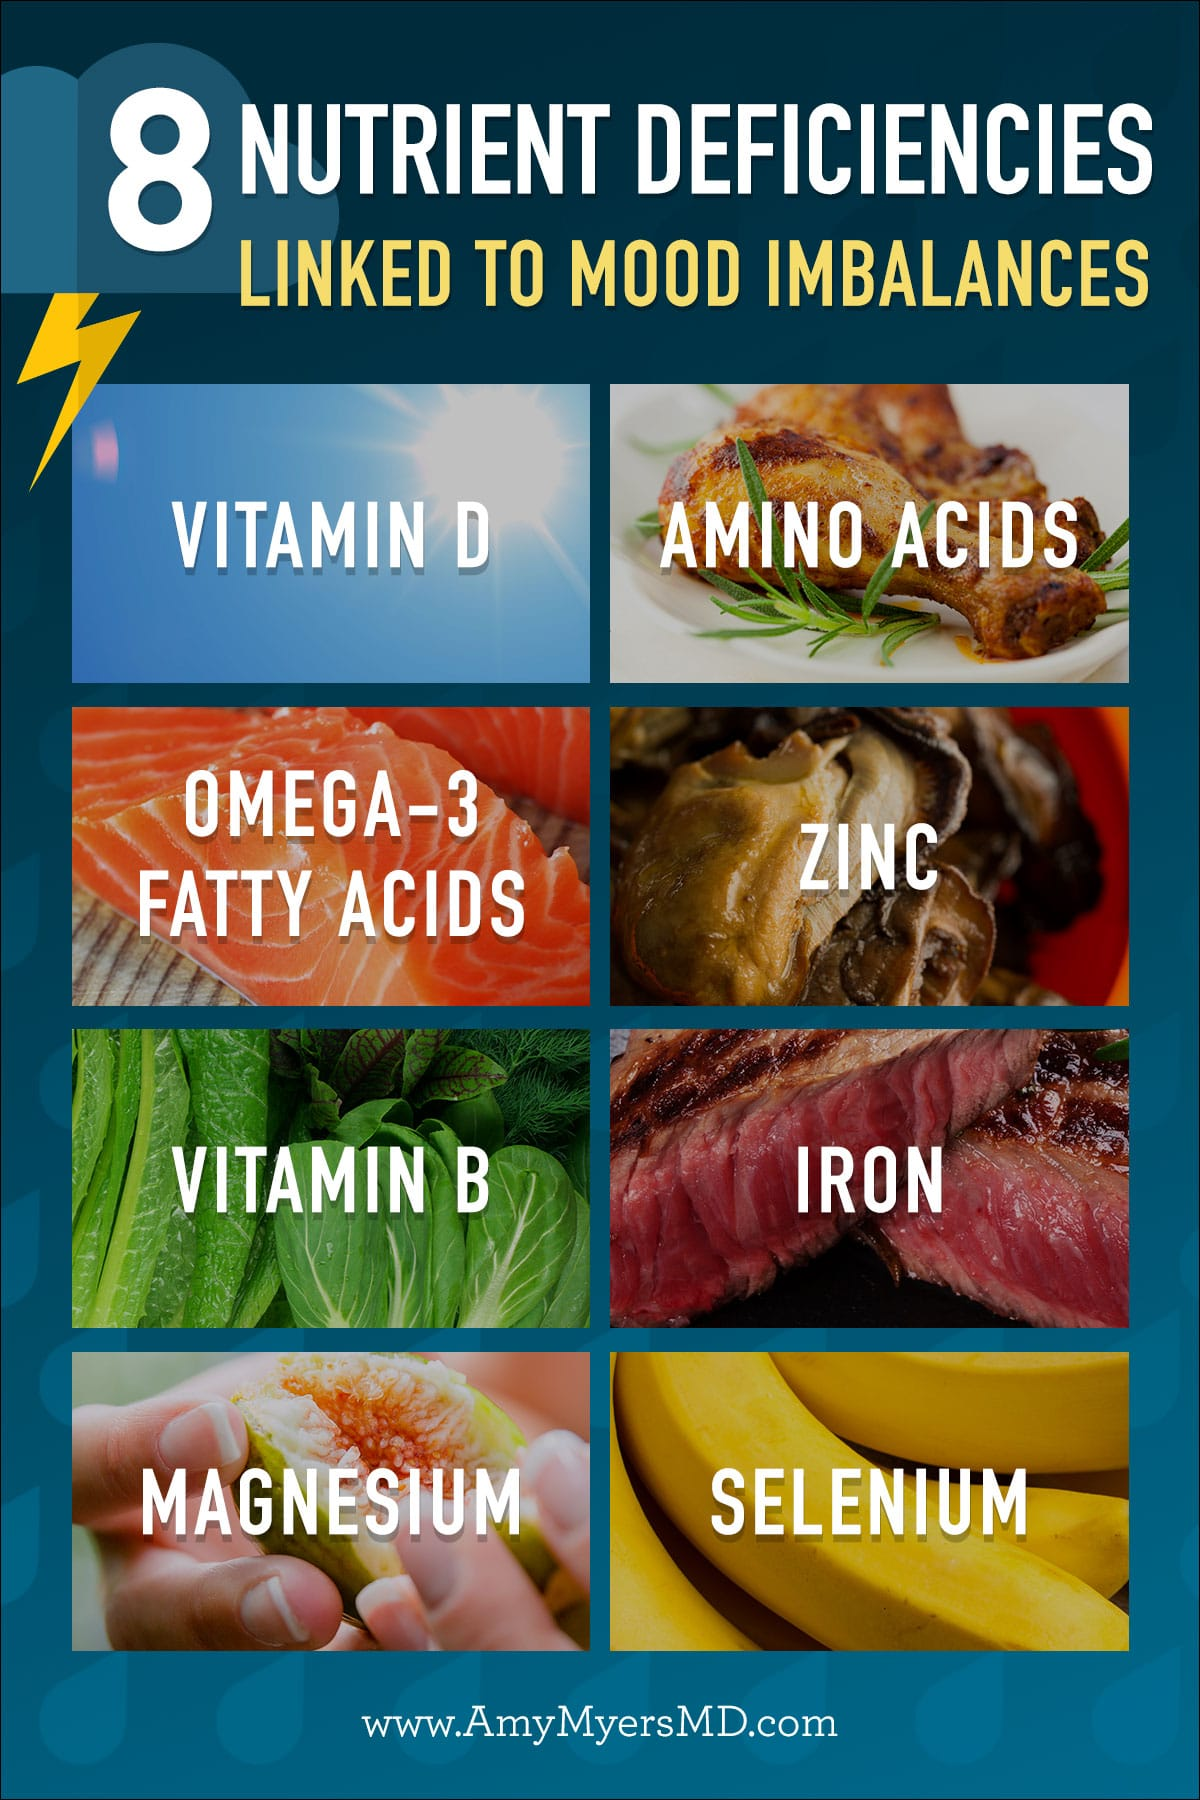 8 Nutrient Deficiencies Linked to Mood Imbalances - Infographic - Amy Myers MD